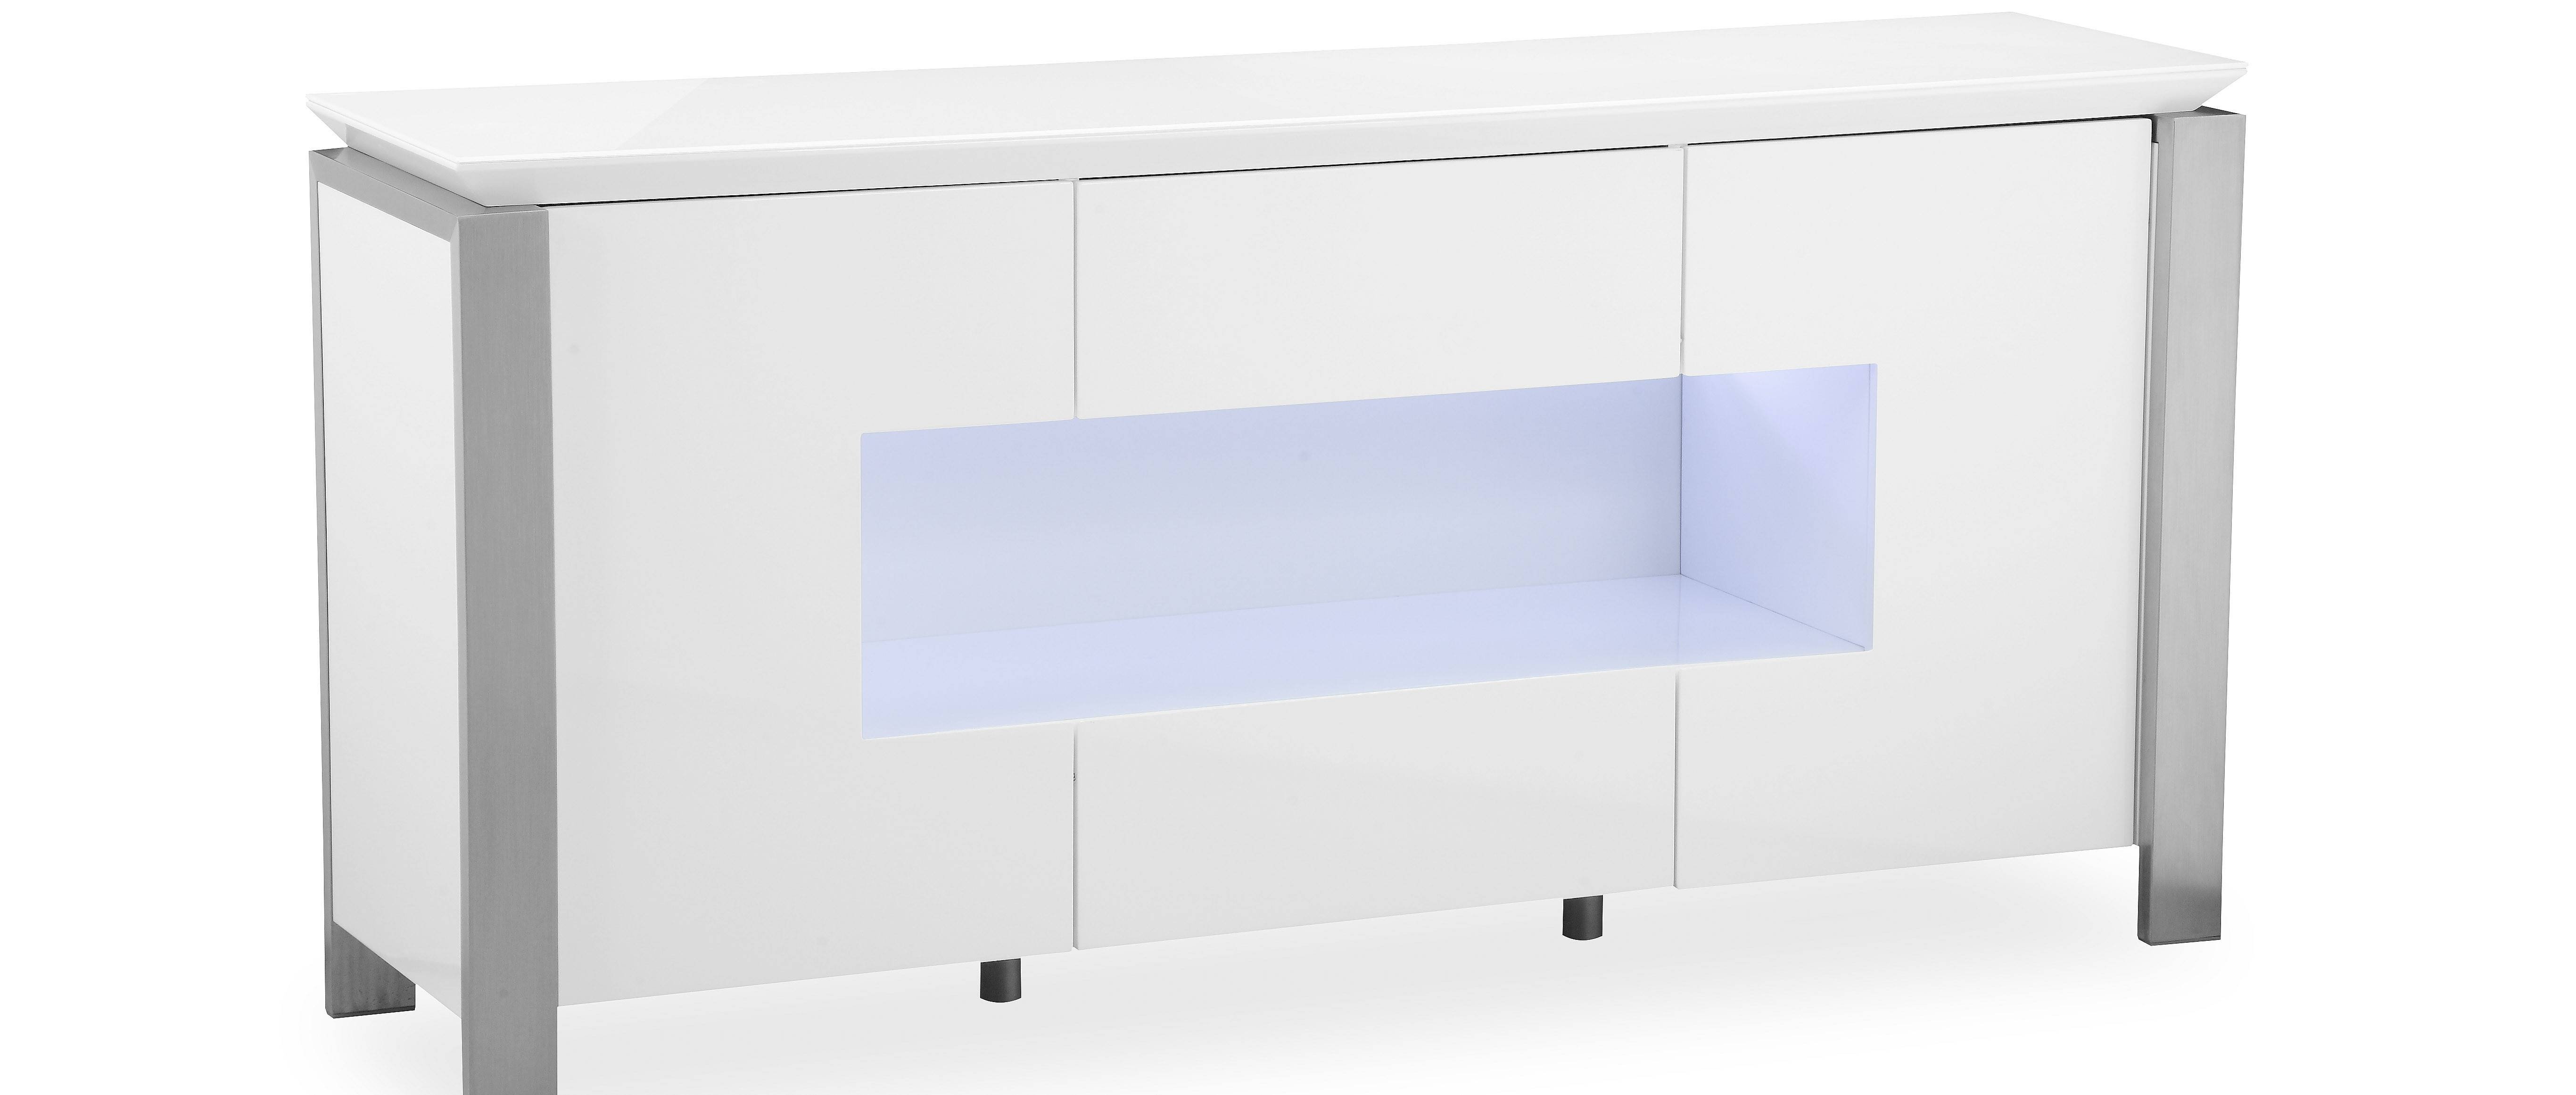 Tribeca - L.e.d. Display Sideboard - White High Gloss throughout Ready Assembled Sideboards (Image 30 of 30)